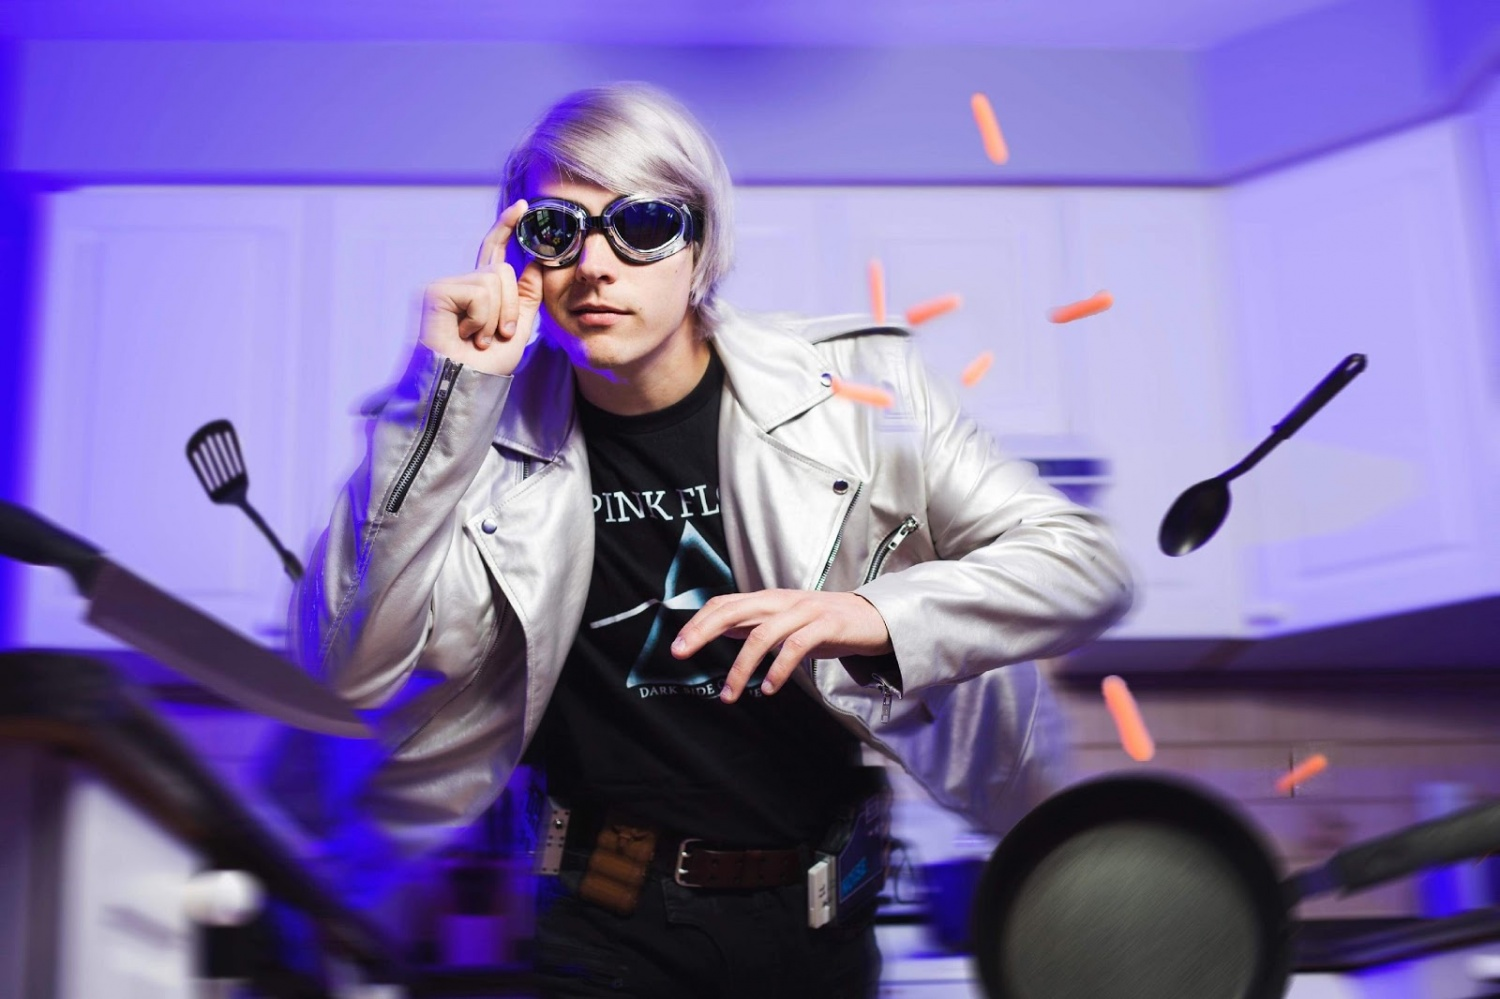 Cosplay and Streaming: What Wes Johnson Has Learned From Smosh And His Solo Career